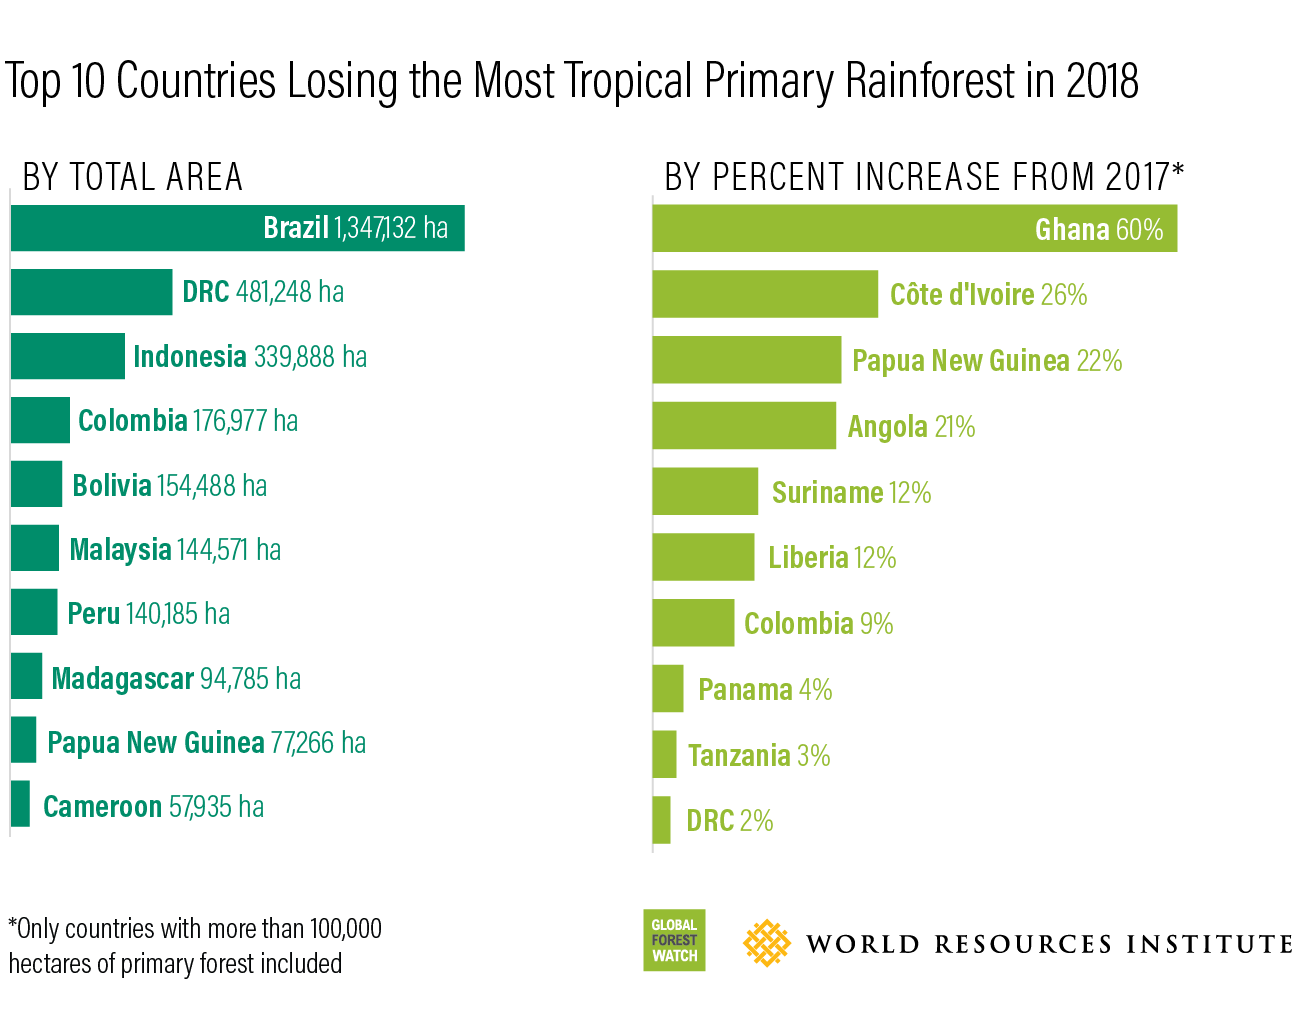 Top 10 Countries losing the most primary forest